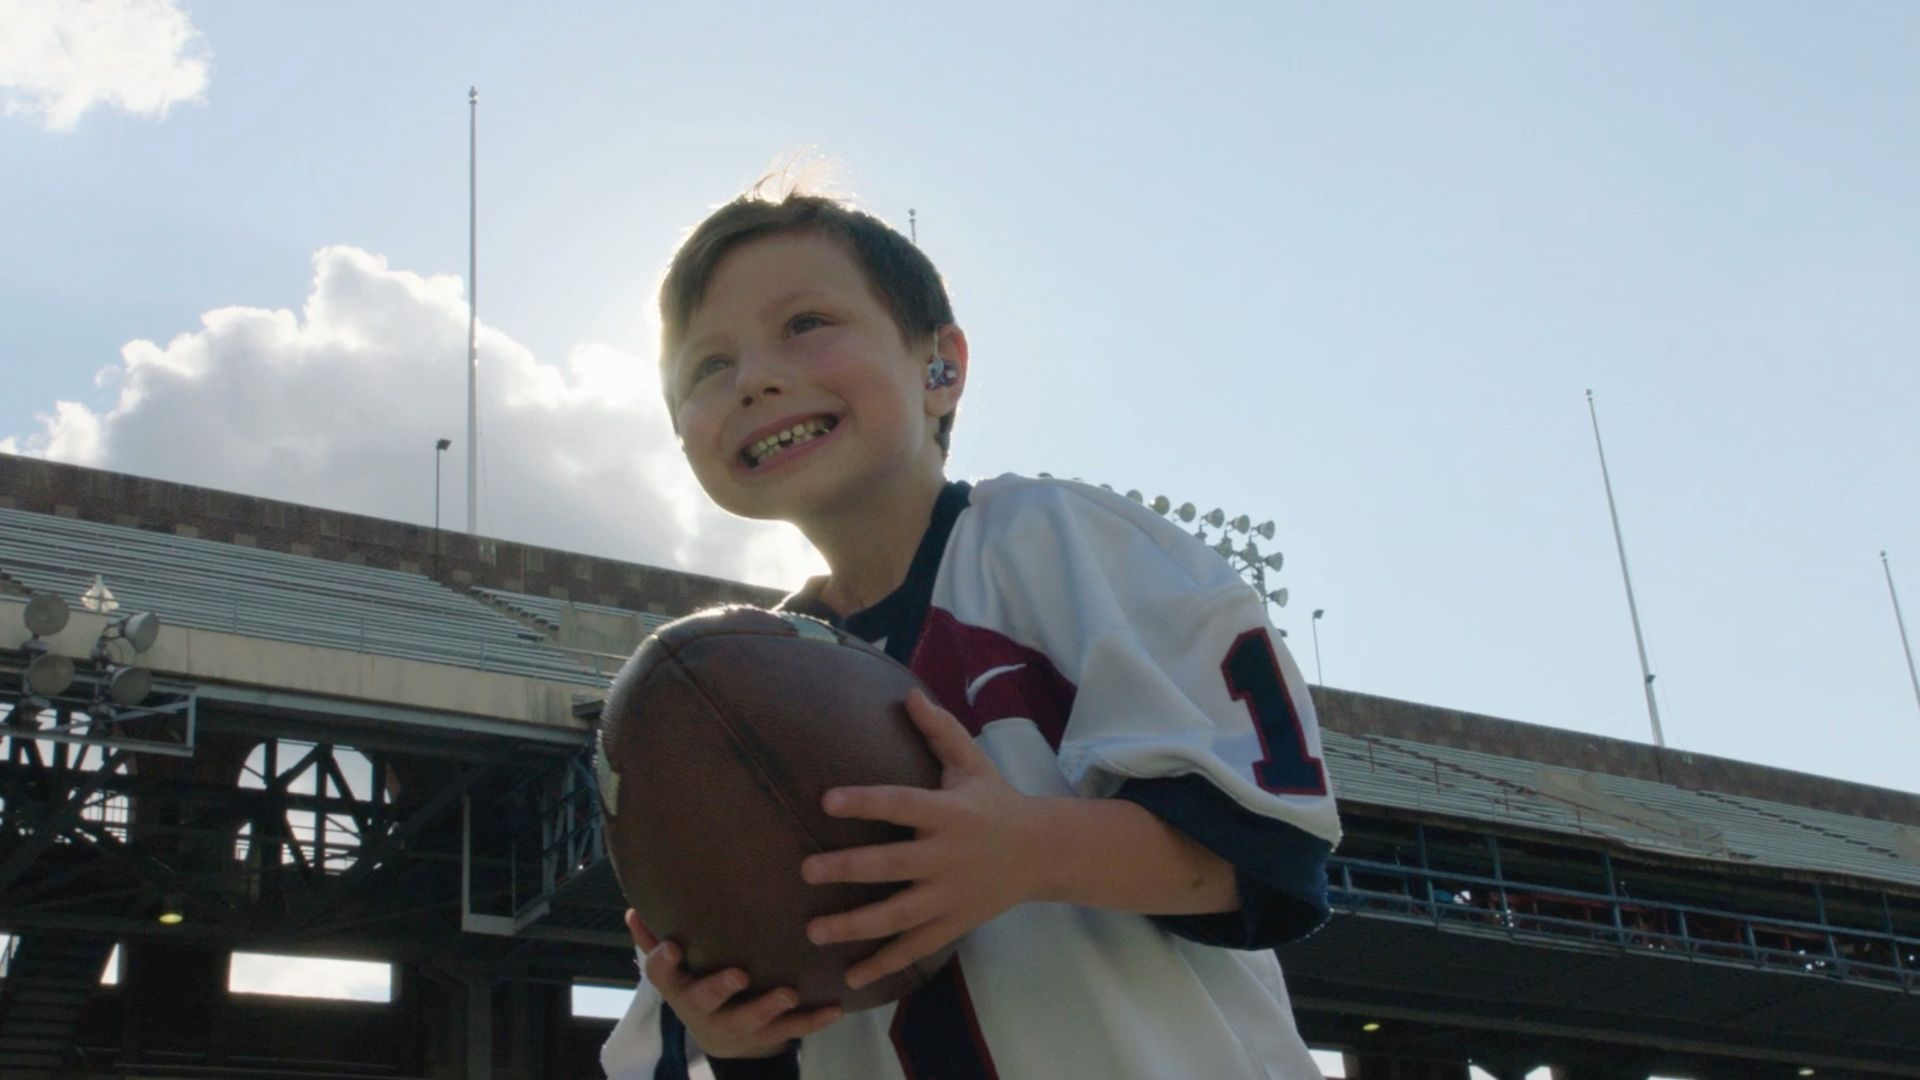 Foudy's Finds: Six-year-old cancer survivor inspires as Penn football's captain